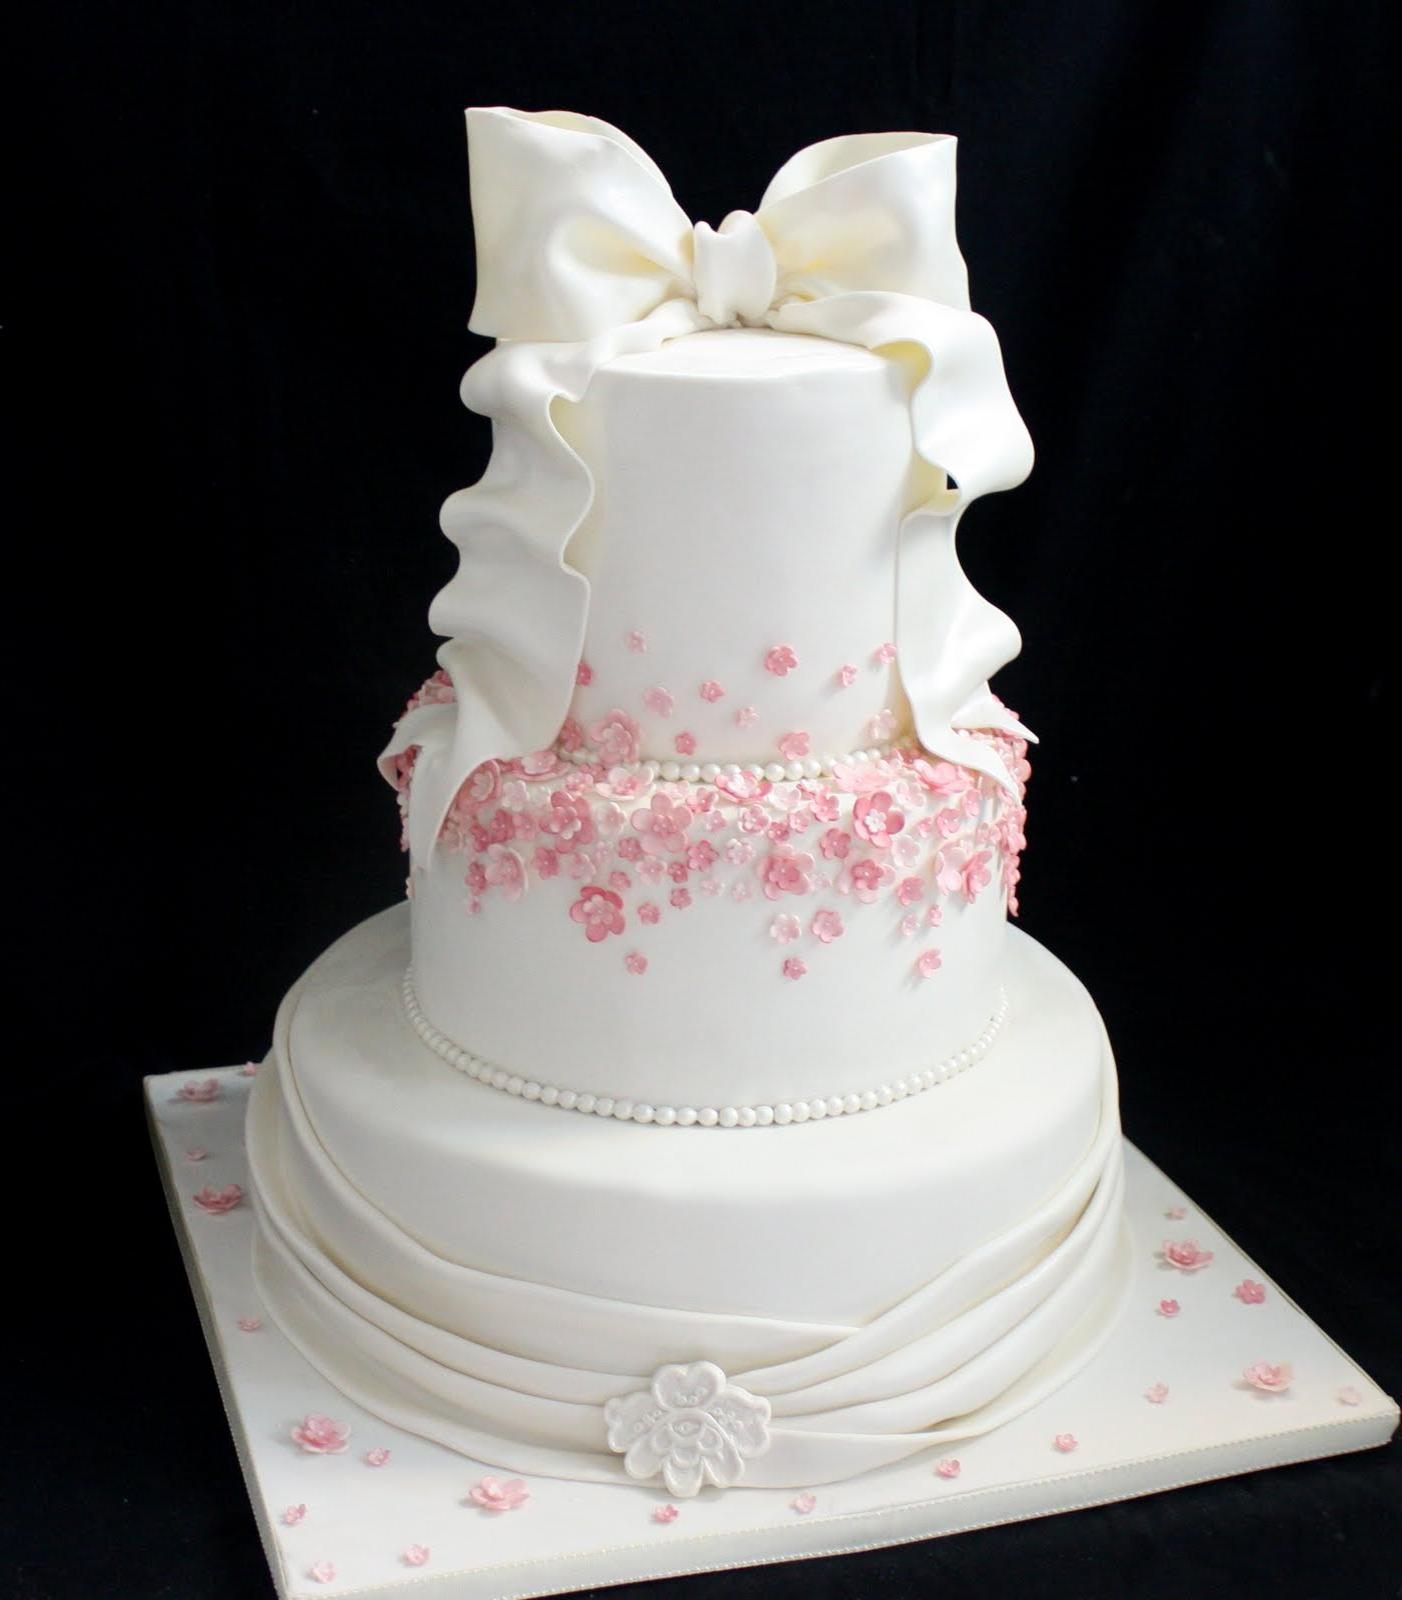 Our latest Wedding cakes: